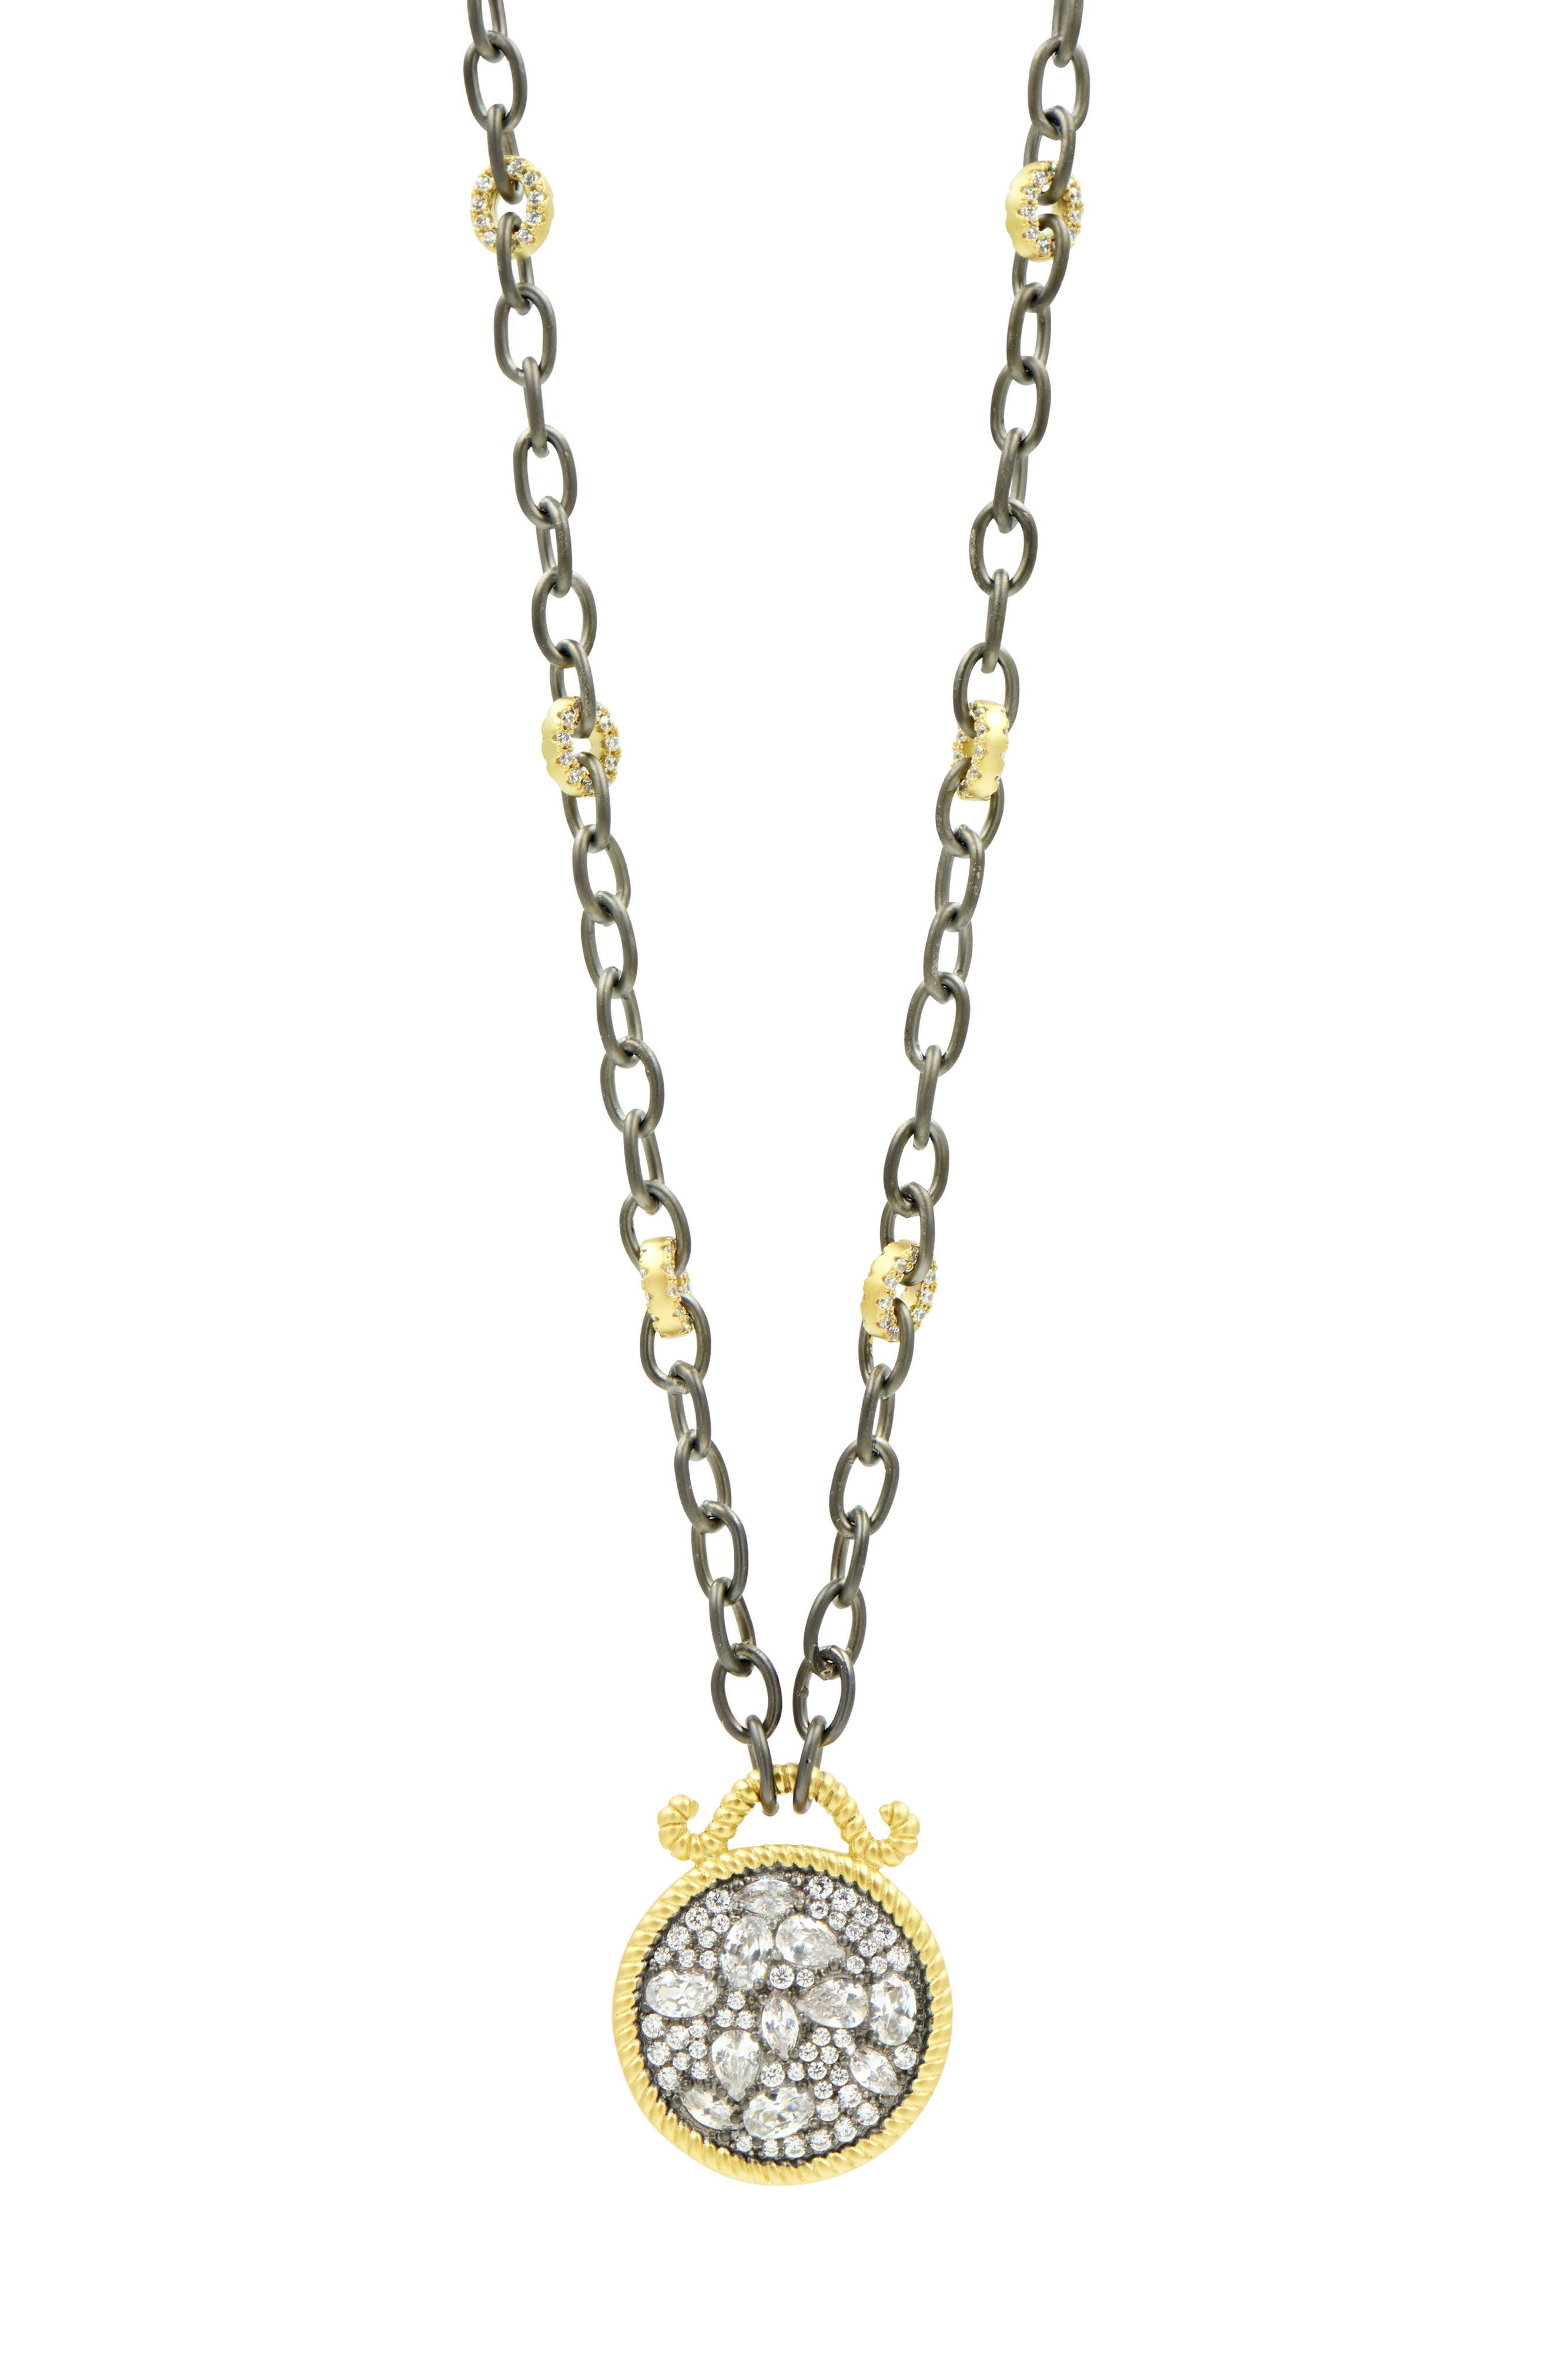 FREIDA ROTHMAN Gilded Cable Reversible Pendant Necklace